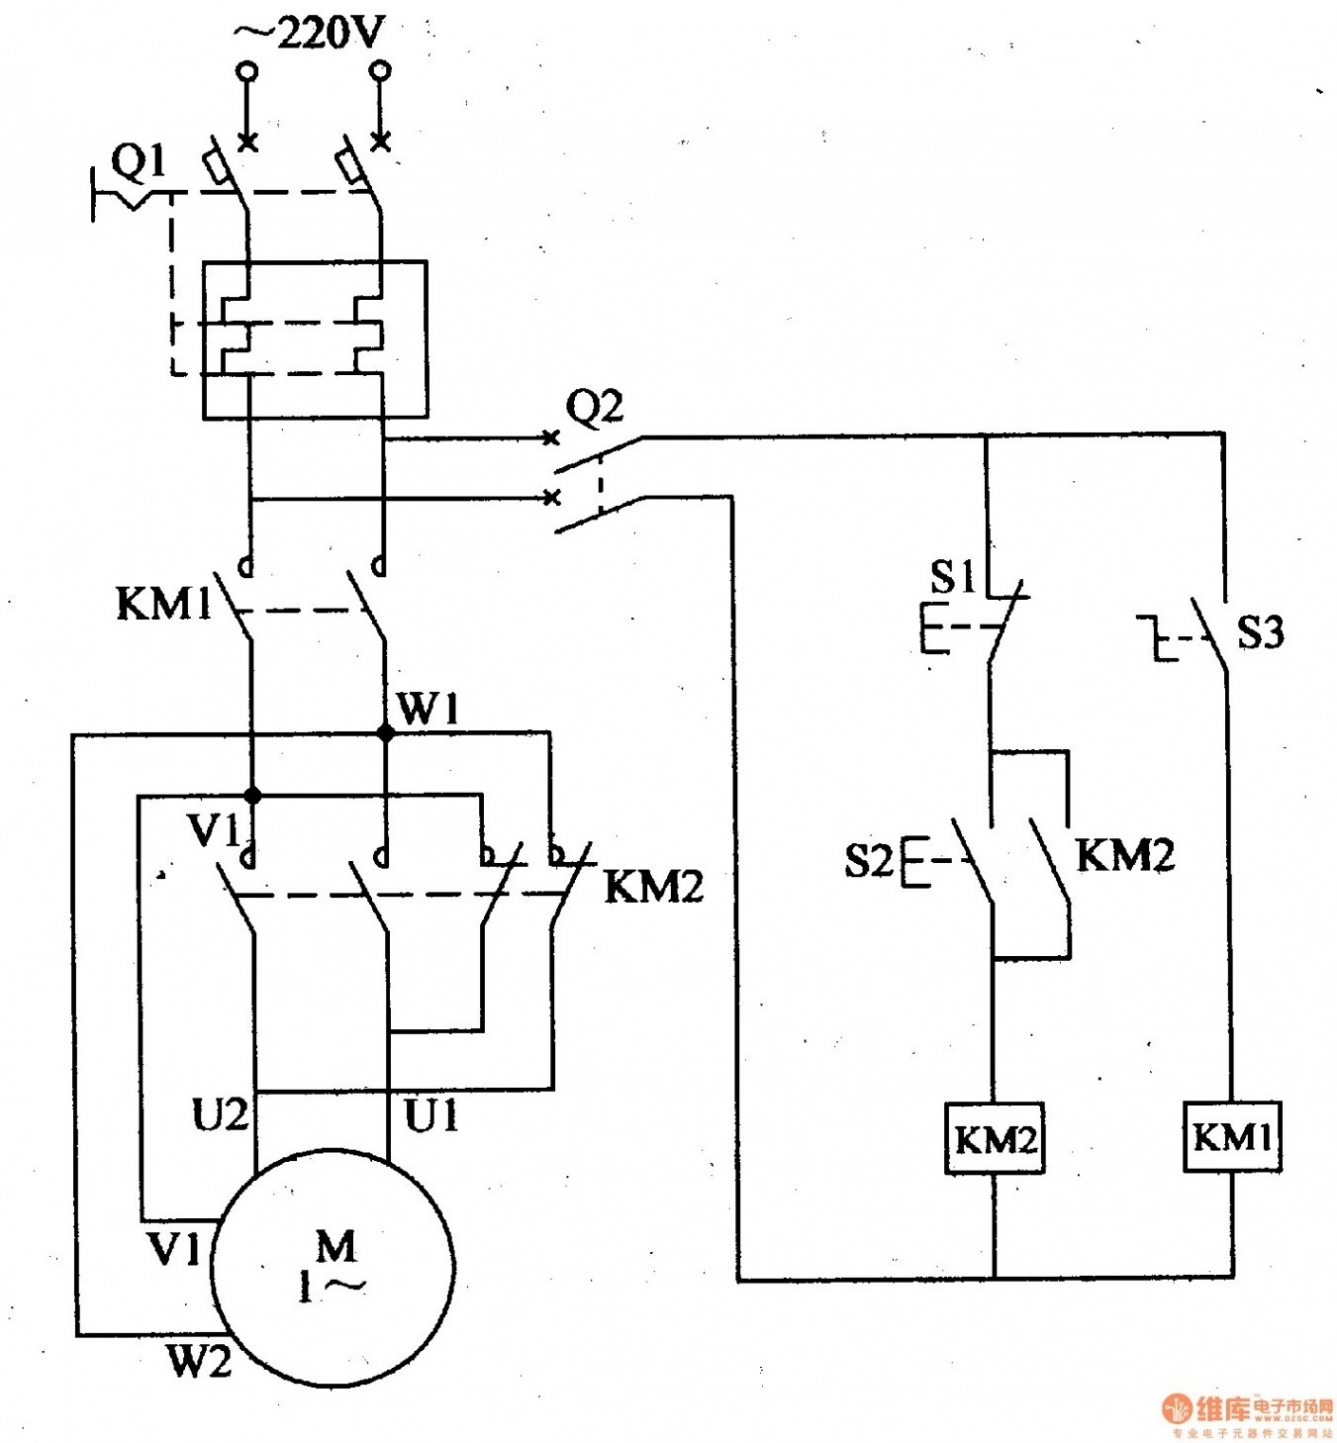 3 phase submersible pump starter circuit diagram